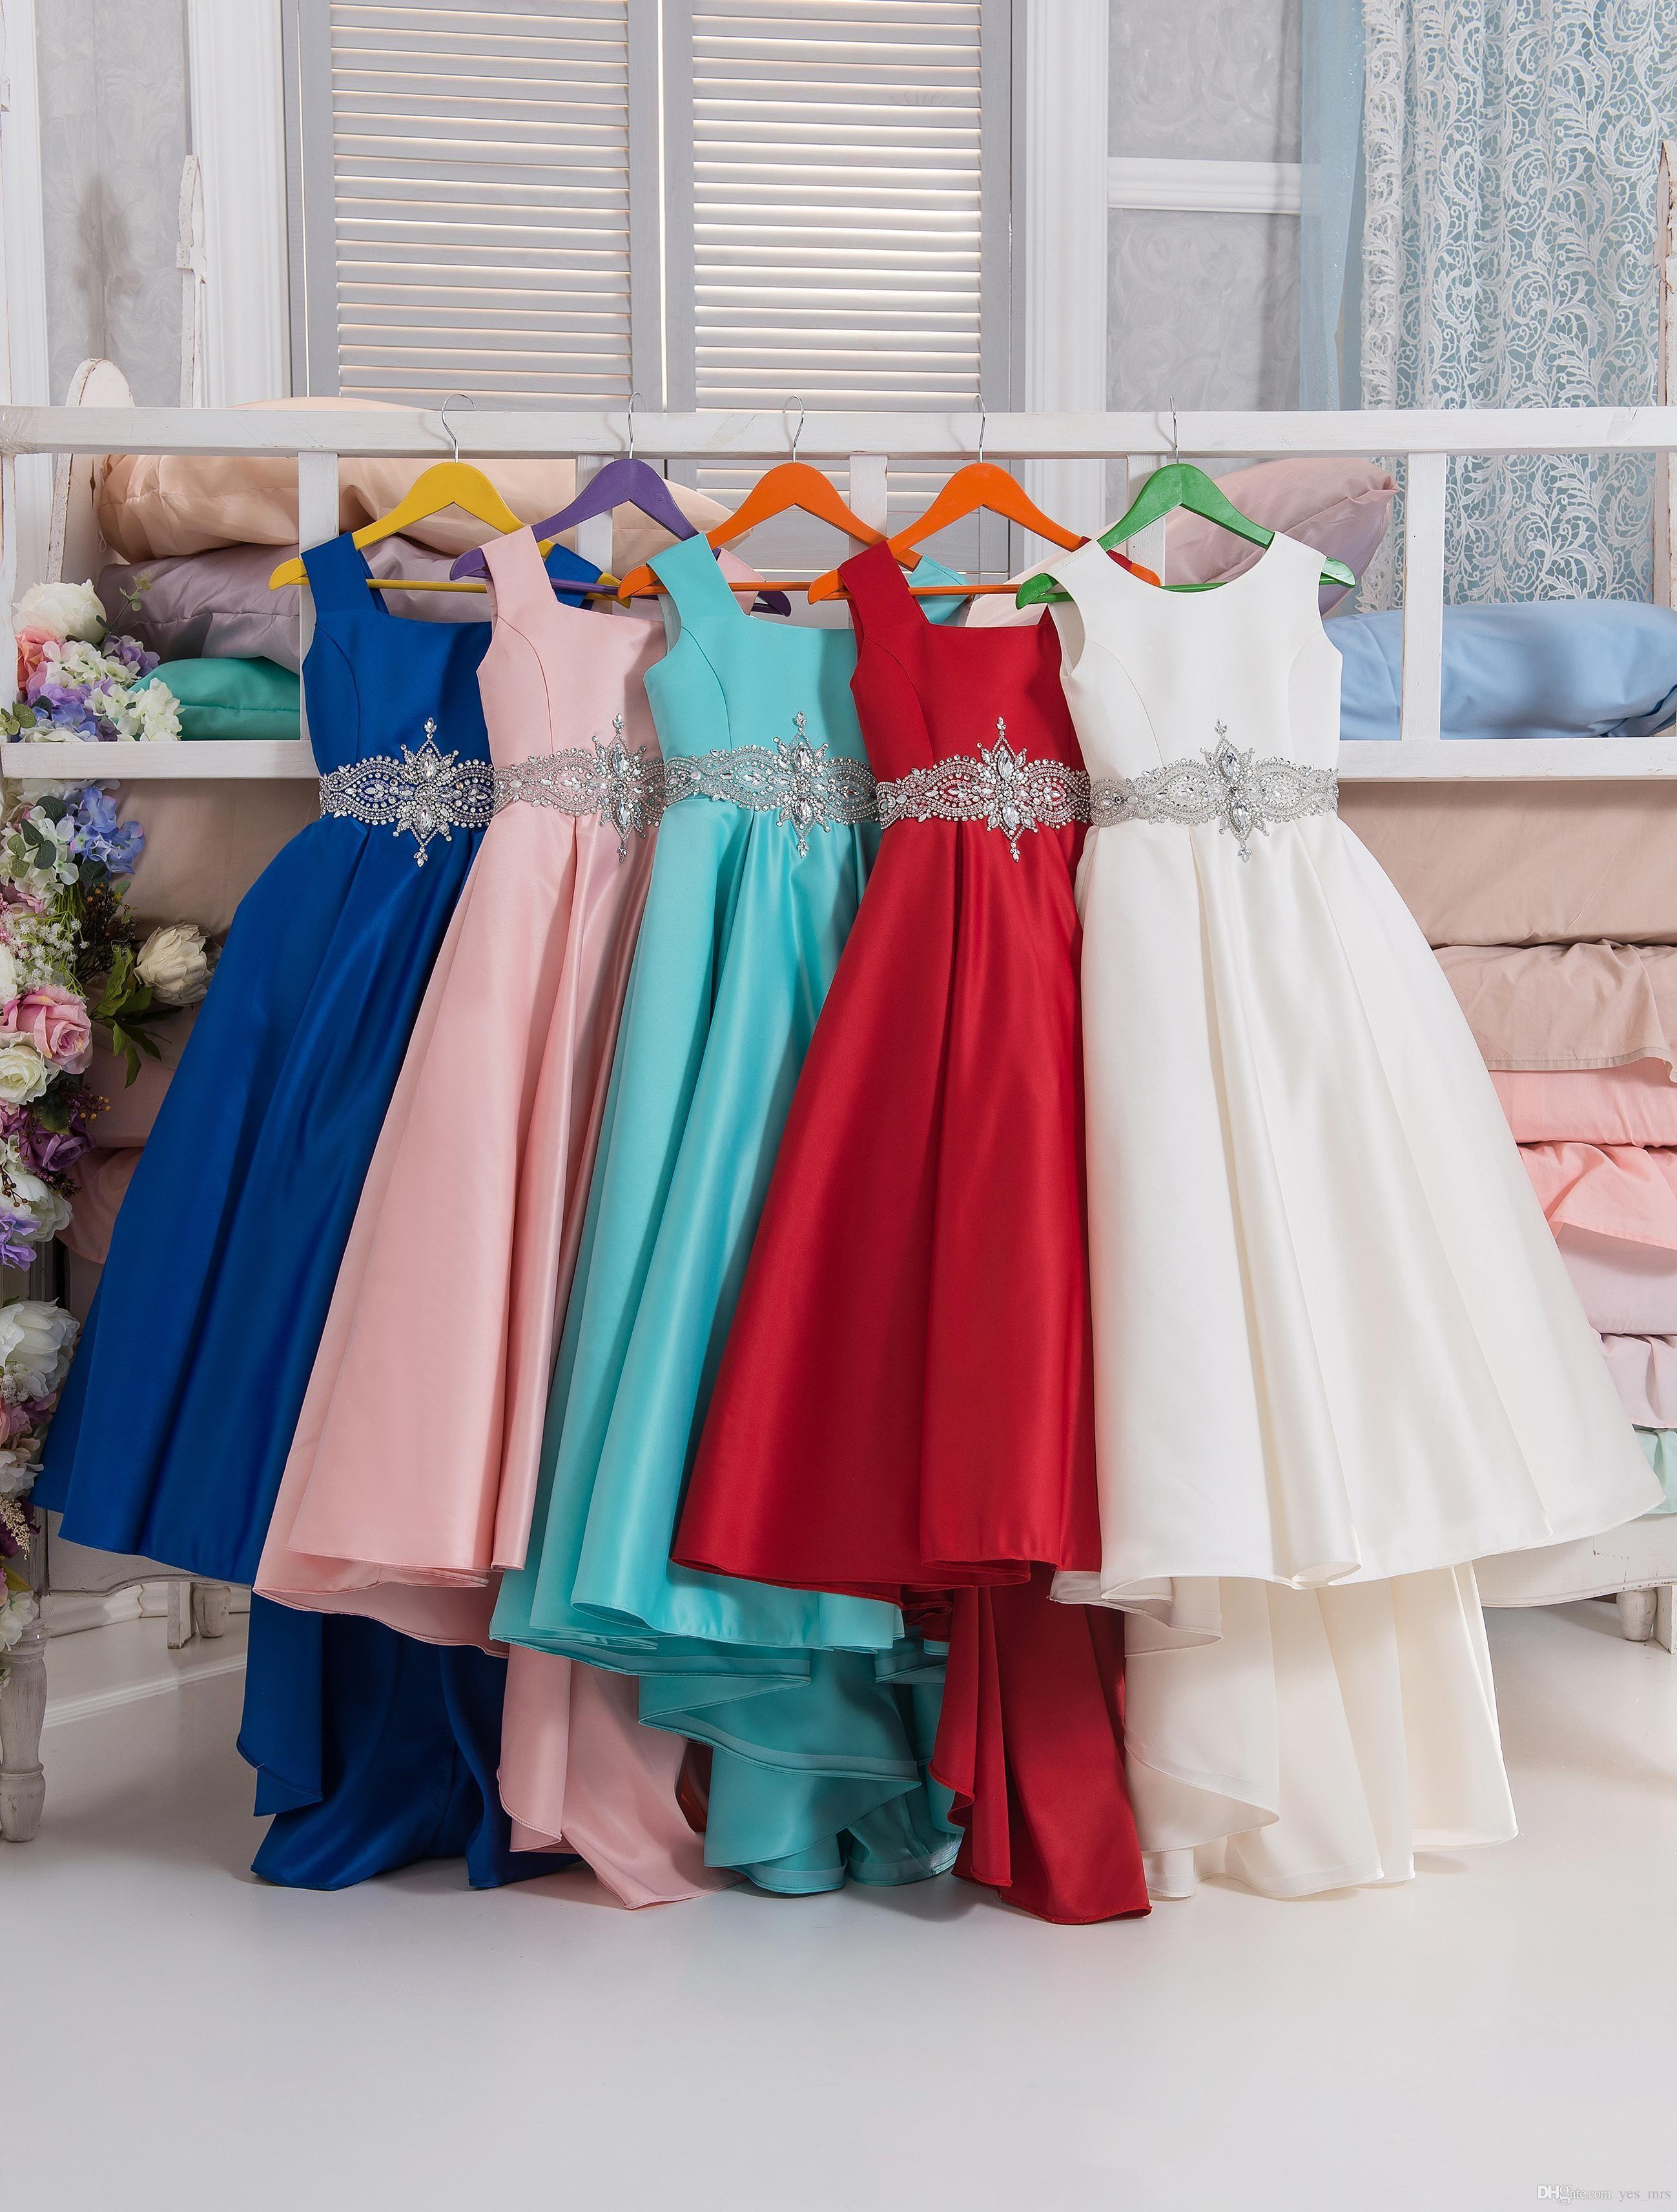 2017 New Red Flower Girls Dresses For Weddings Jewel Neck Bateau Neck Satin Bowes Crystal Belt Beaded Birthday Children Girl Pageant Gowns